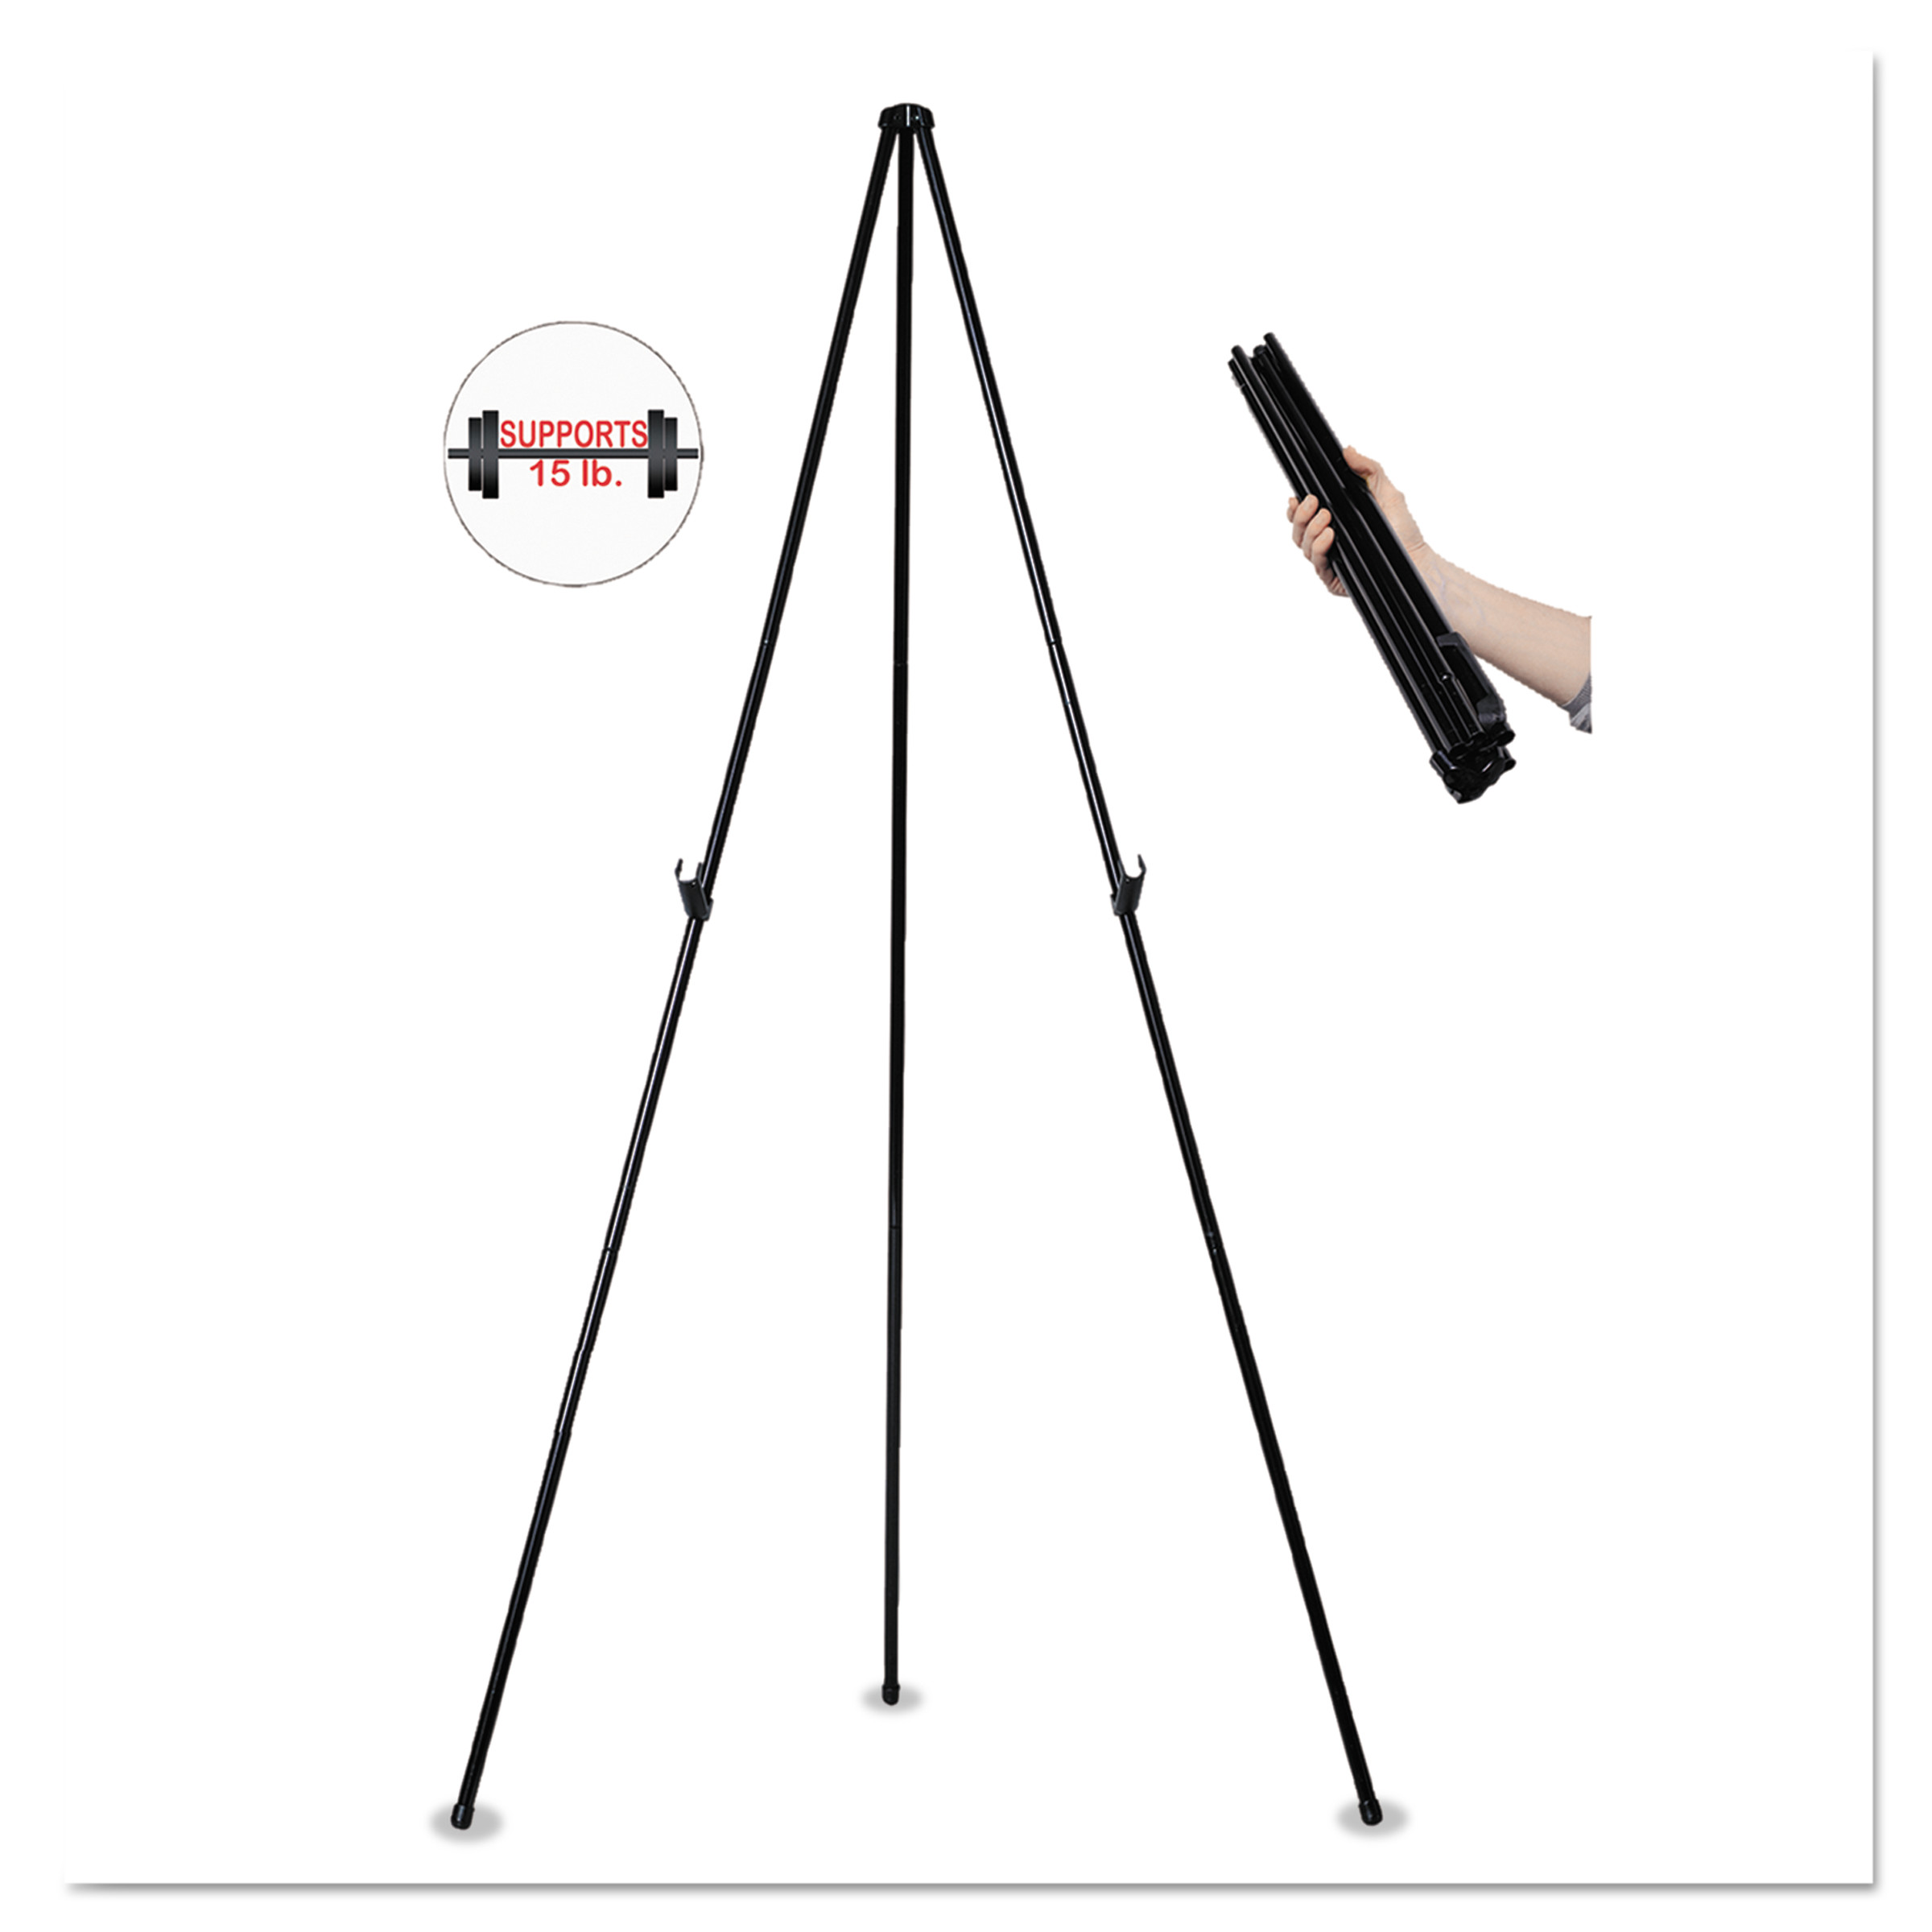 "MasterVision Instant Easel, 61 1/2"", Black, Steel, Heavy-Duty"